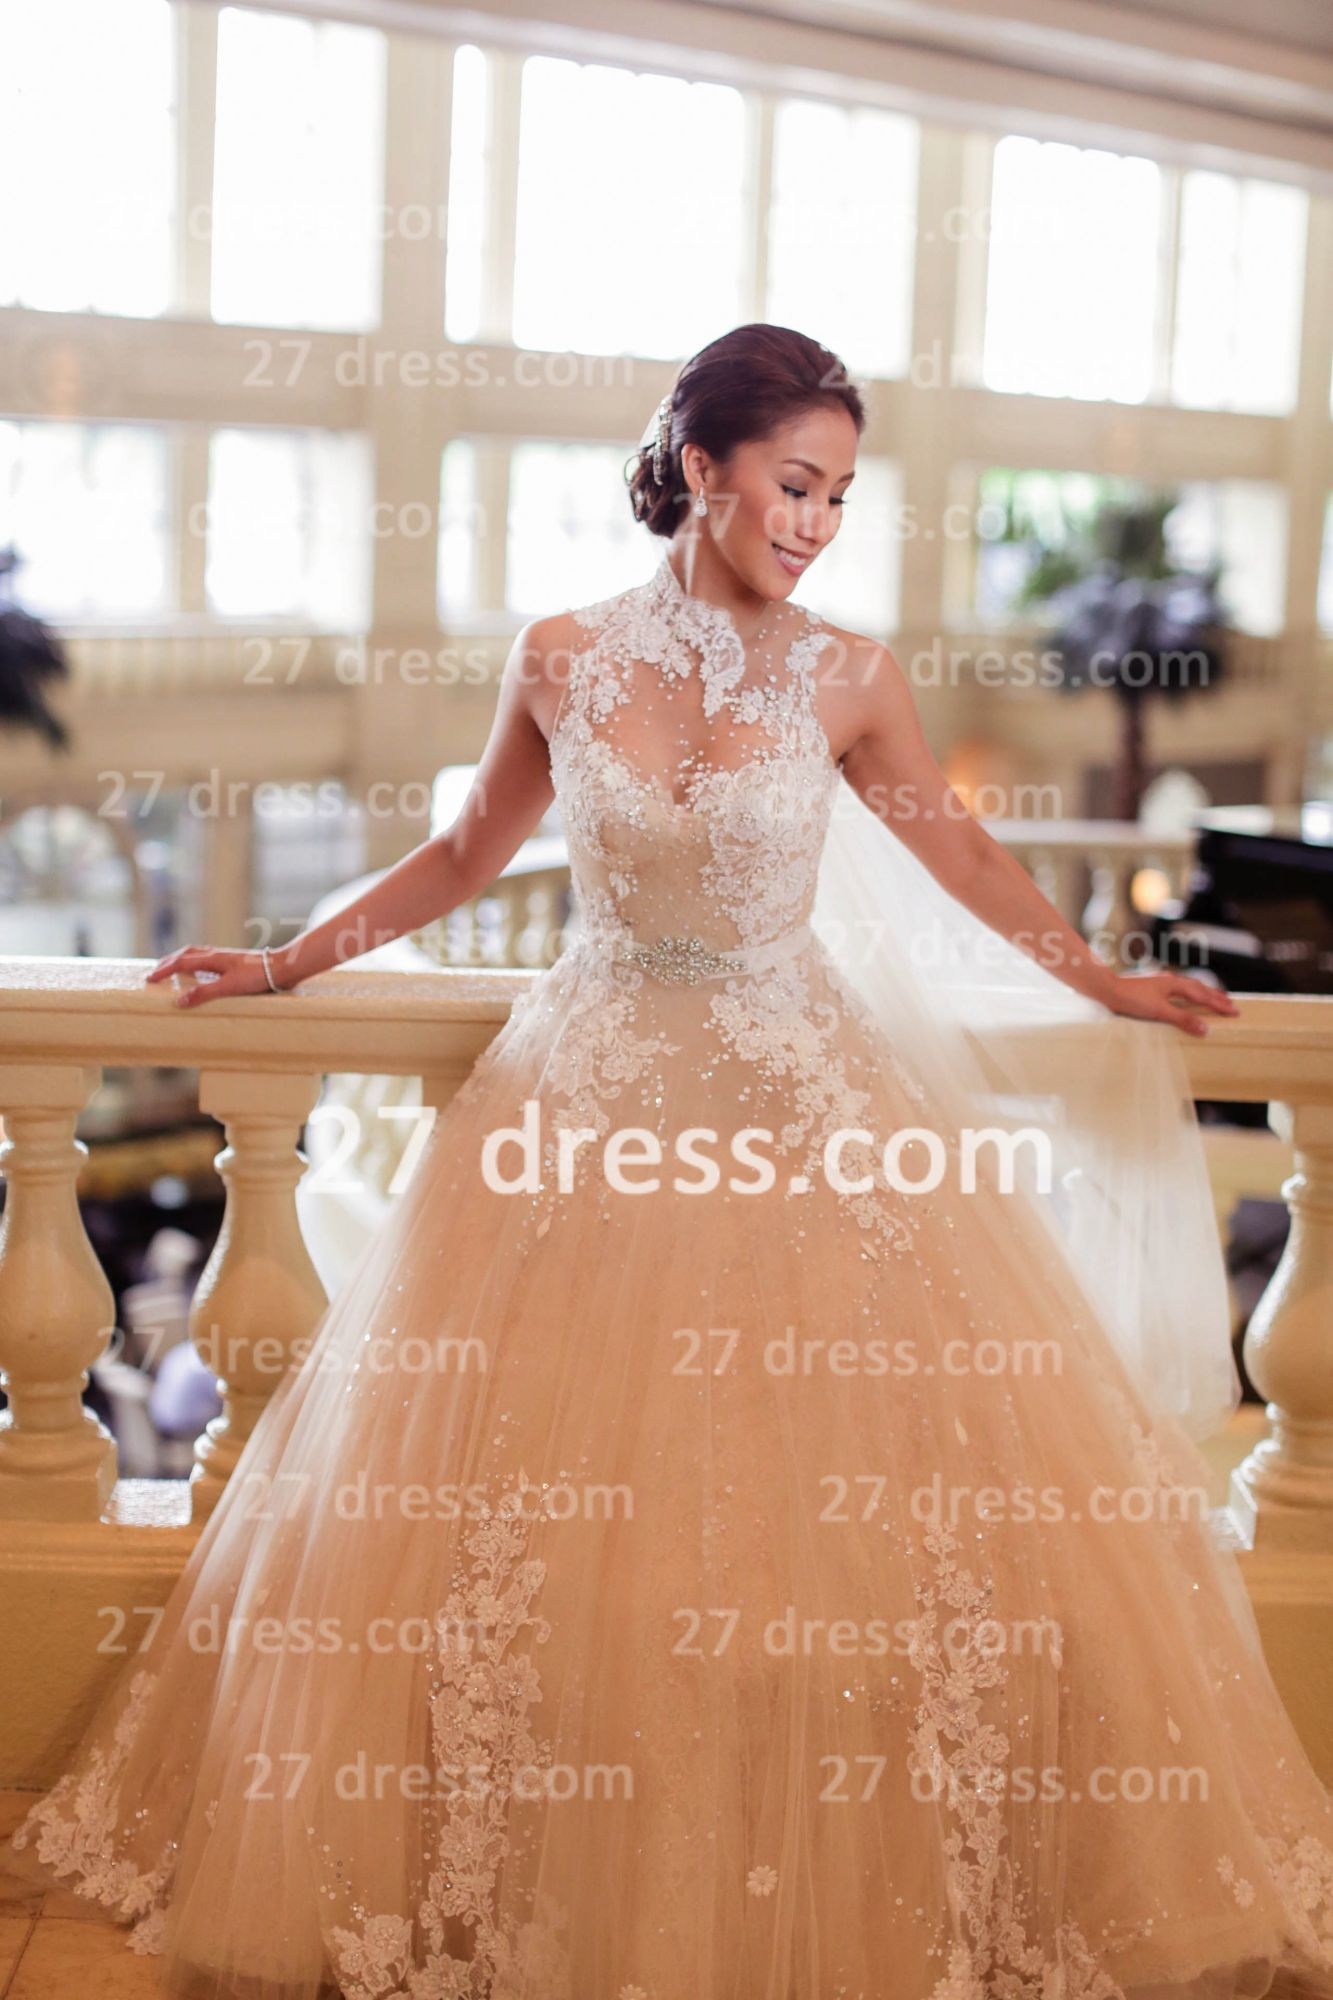 Train A-line Wedding Dresses Bridal Gowns with 2021 Sheer Tulle Buttons Sleeveless Applique Beaded Court_2021 Wedding Dresses_Wedding Dresses_High Qua